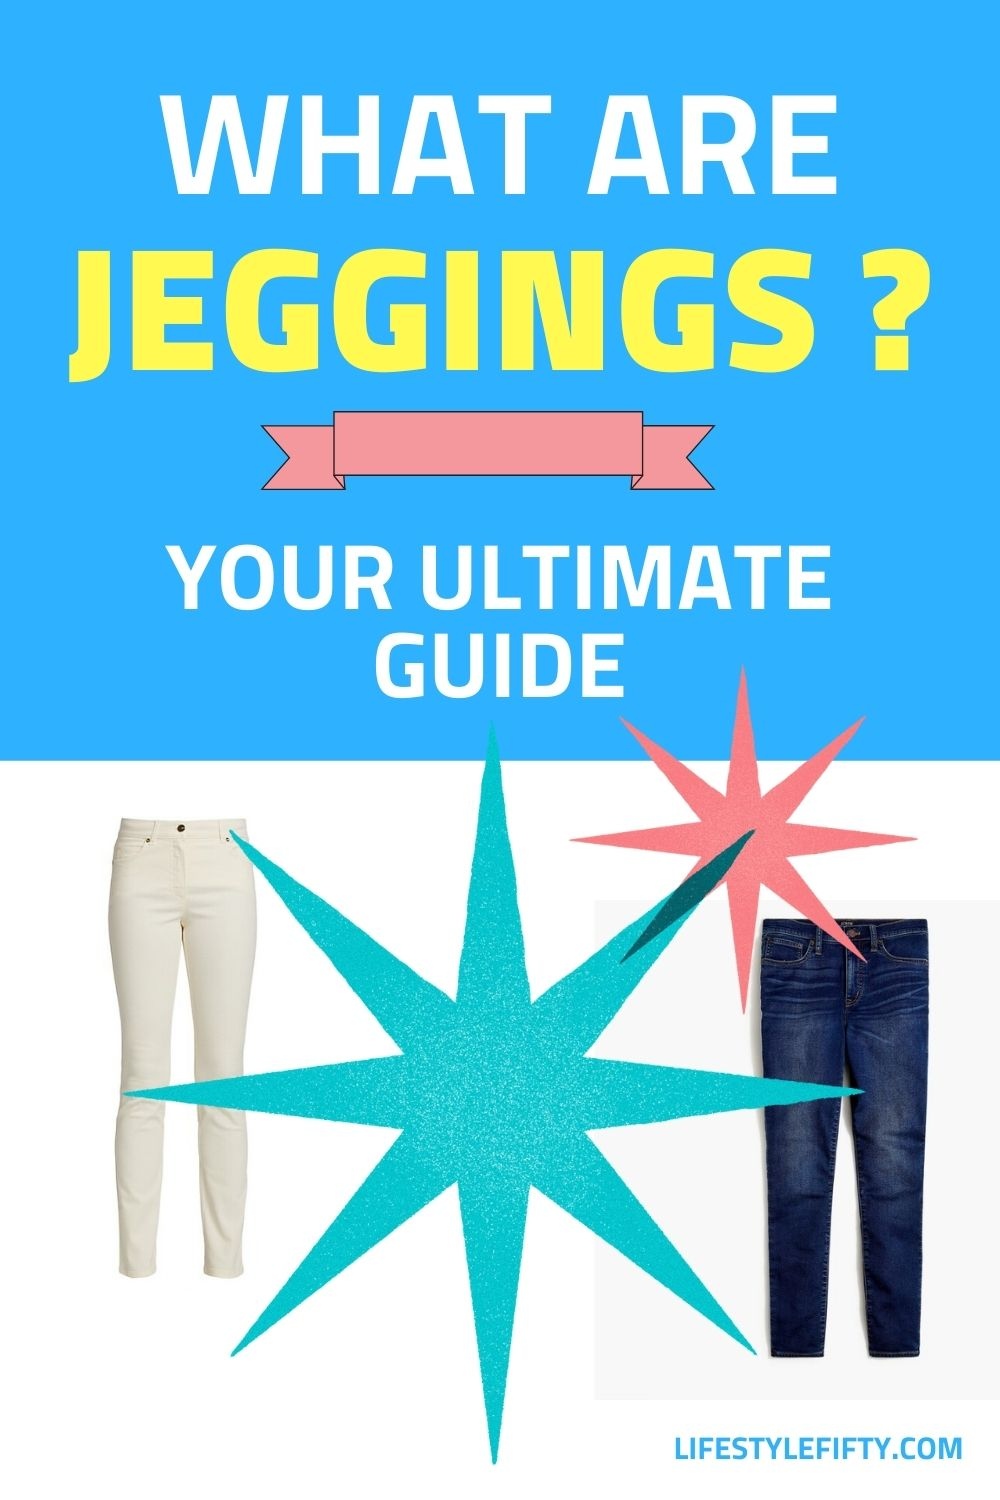 Poster featuring jeggings and text overlay graphics